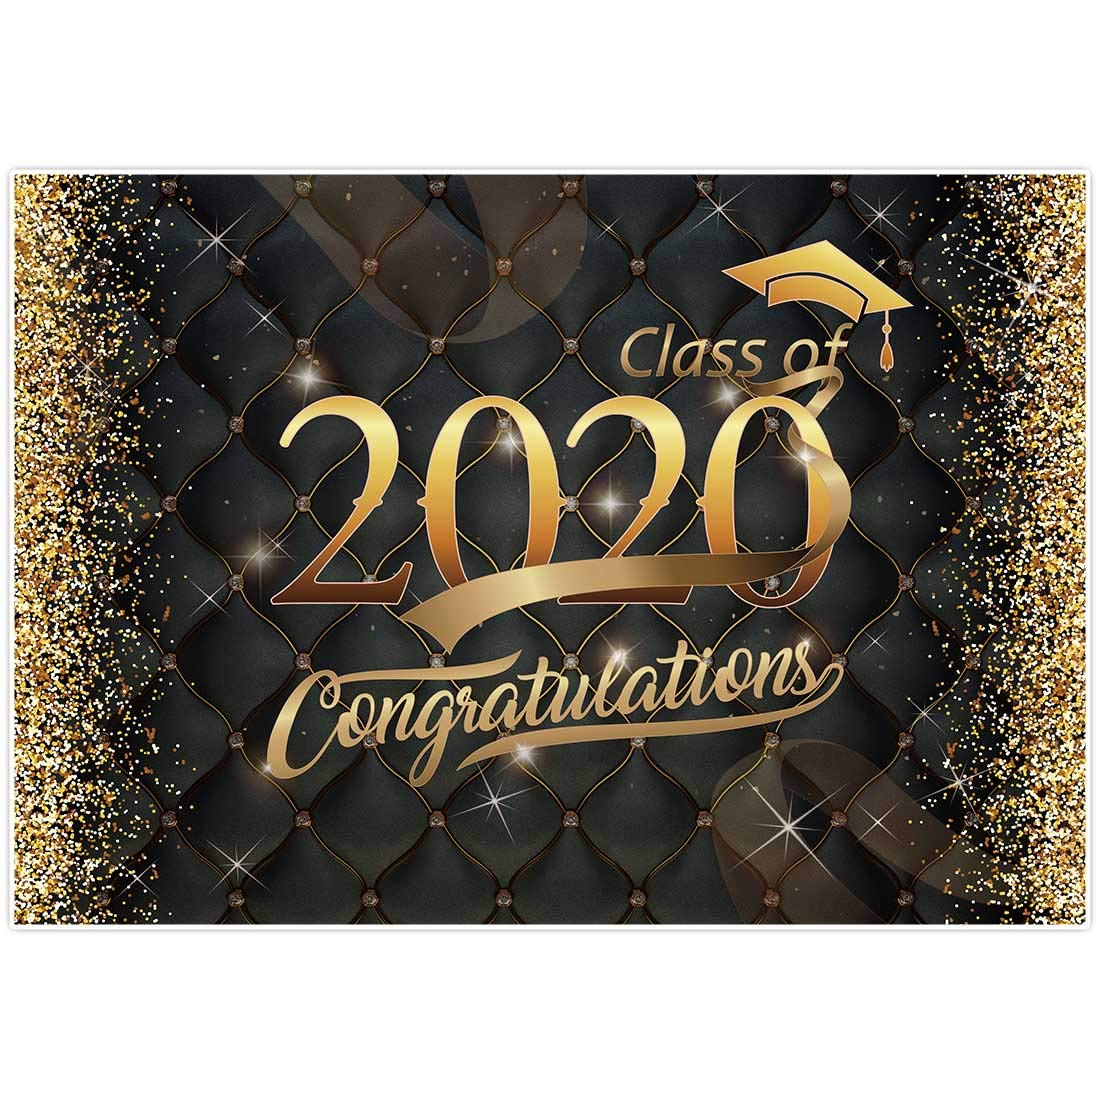 Allenjoy 7x5ft Graduation Party Backdrop Class of 2020 Bachelor Cap Ribbon Gold Glitter Photography Background Grad Celebration Decorations Photo Booth Props Cake Table Banner